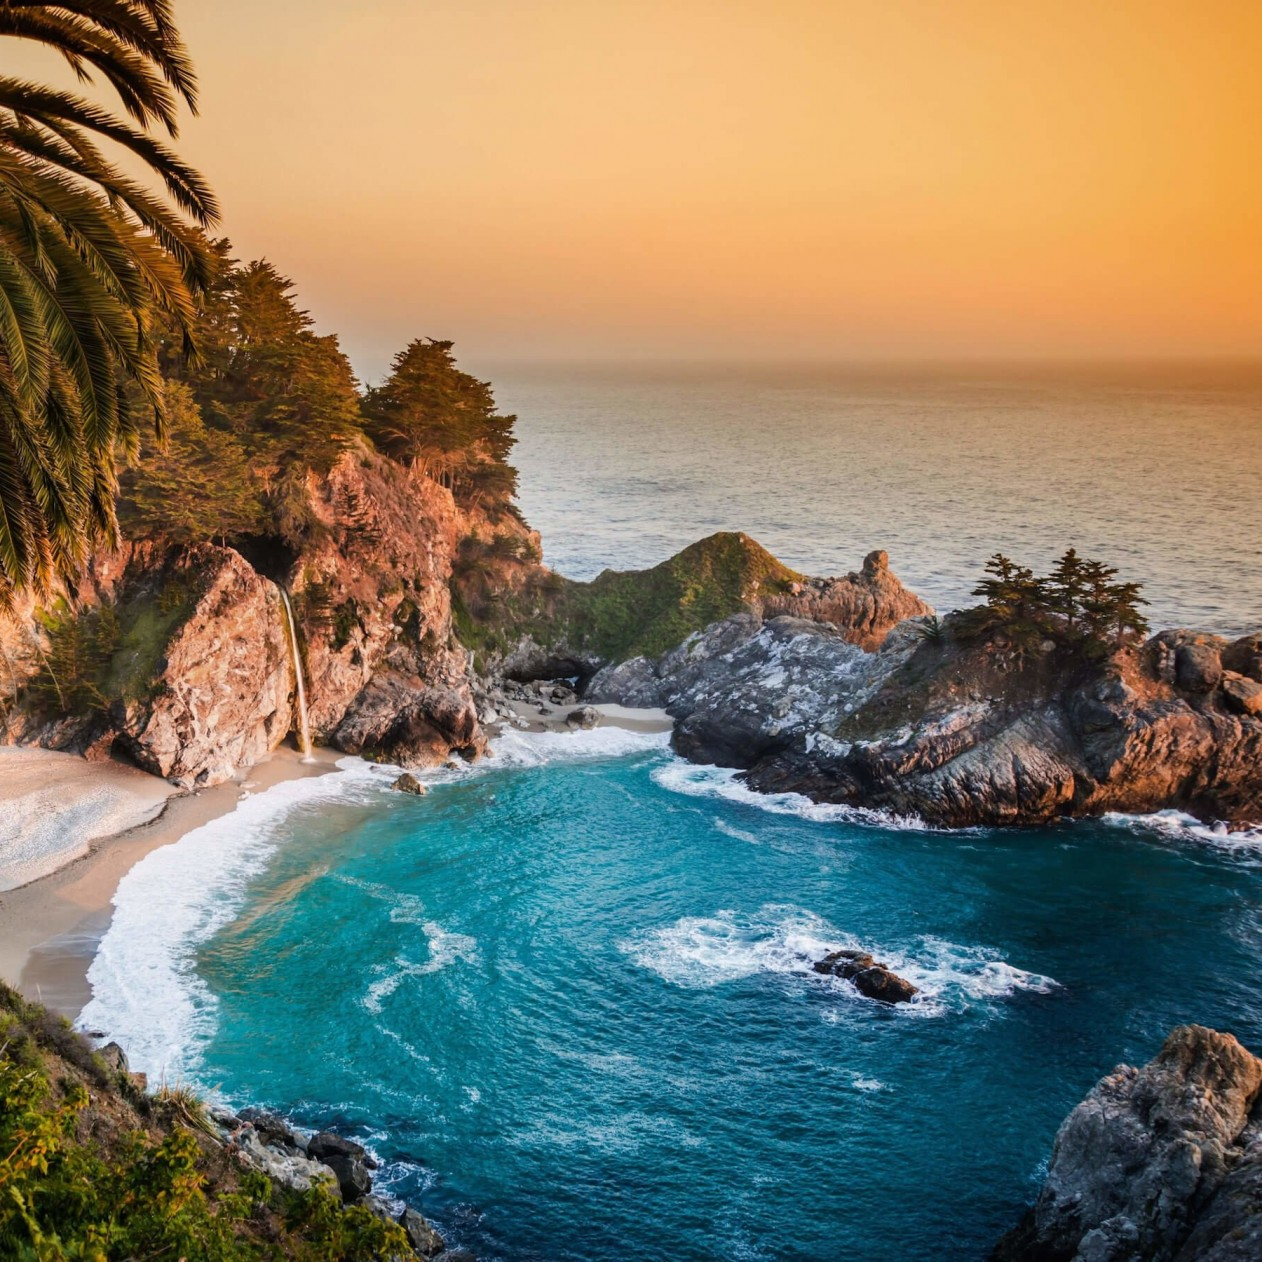 McWay Falls in Big Sur, California, USA Wallpaper for Apple iPad mini